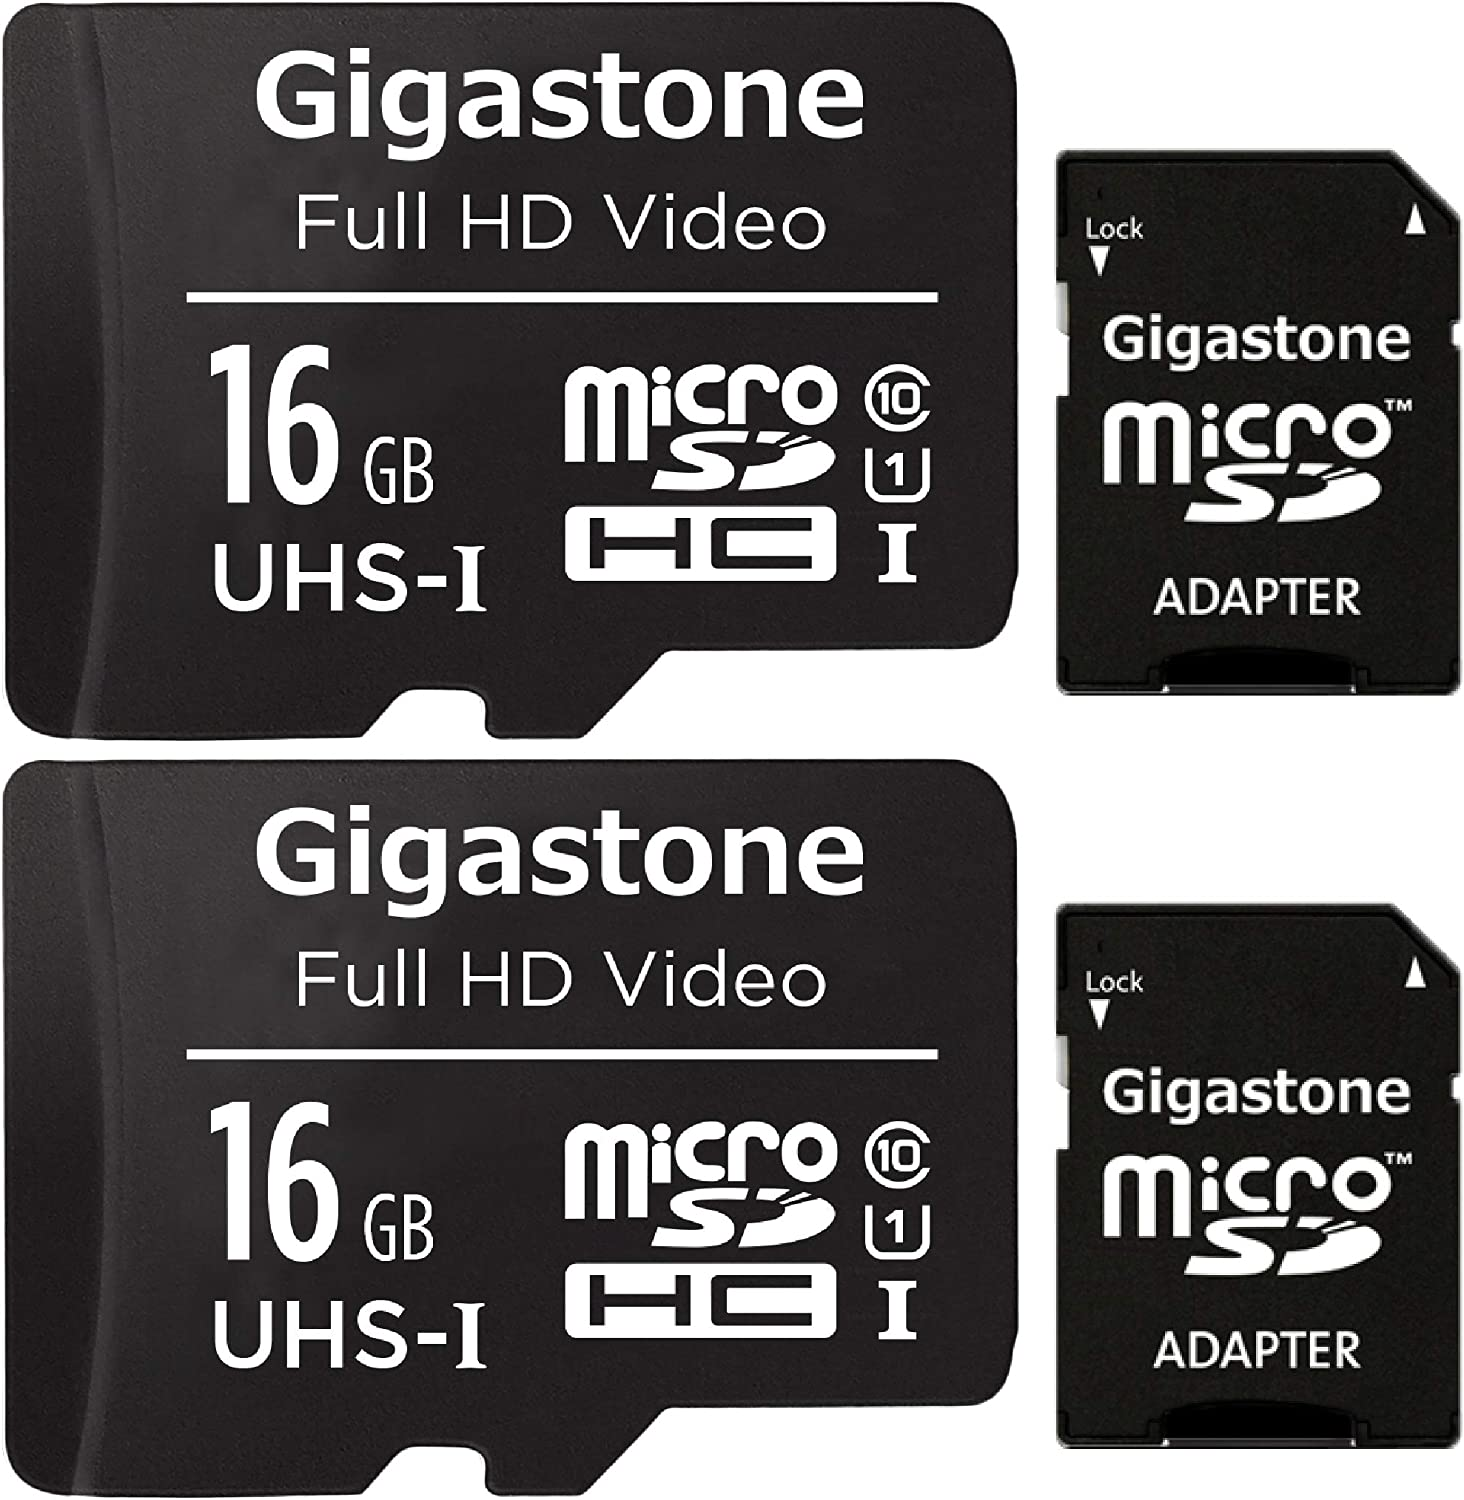 Gigastone 16GB 2-Pack Micro SD Card, FHD Video, Surveillance Security Cam Action Camera Drone, 85MB/s Micro SDHC UHS-I U1 Class 10